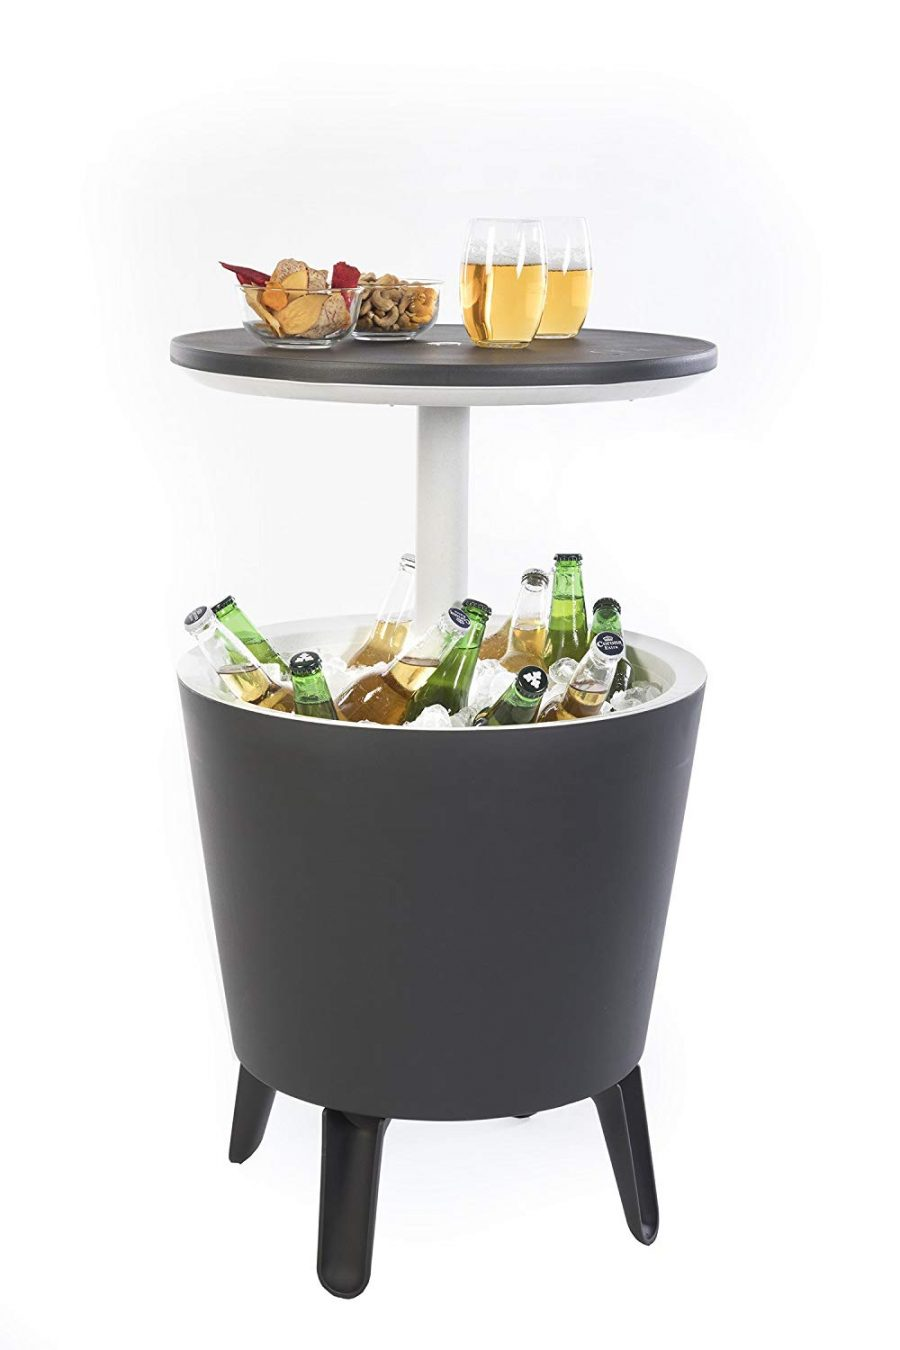 Cool Outdoor Patio Cooler Table